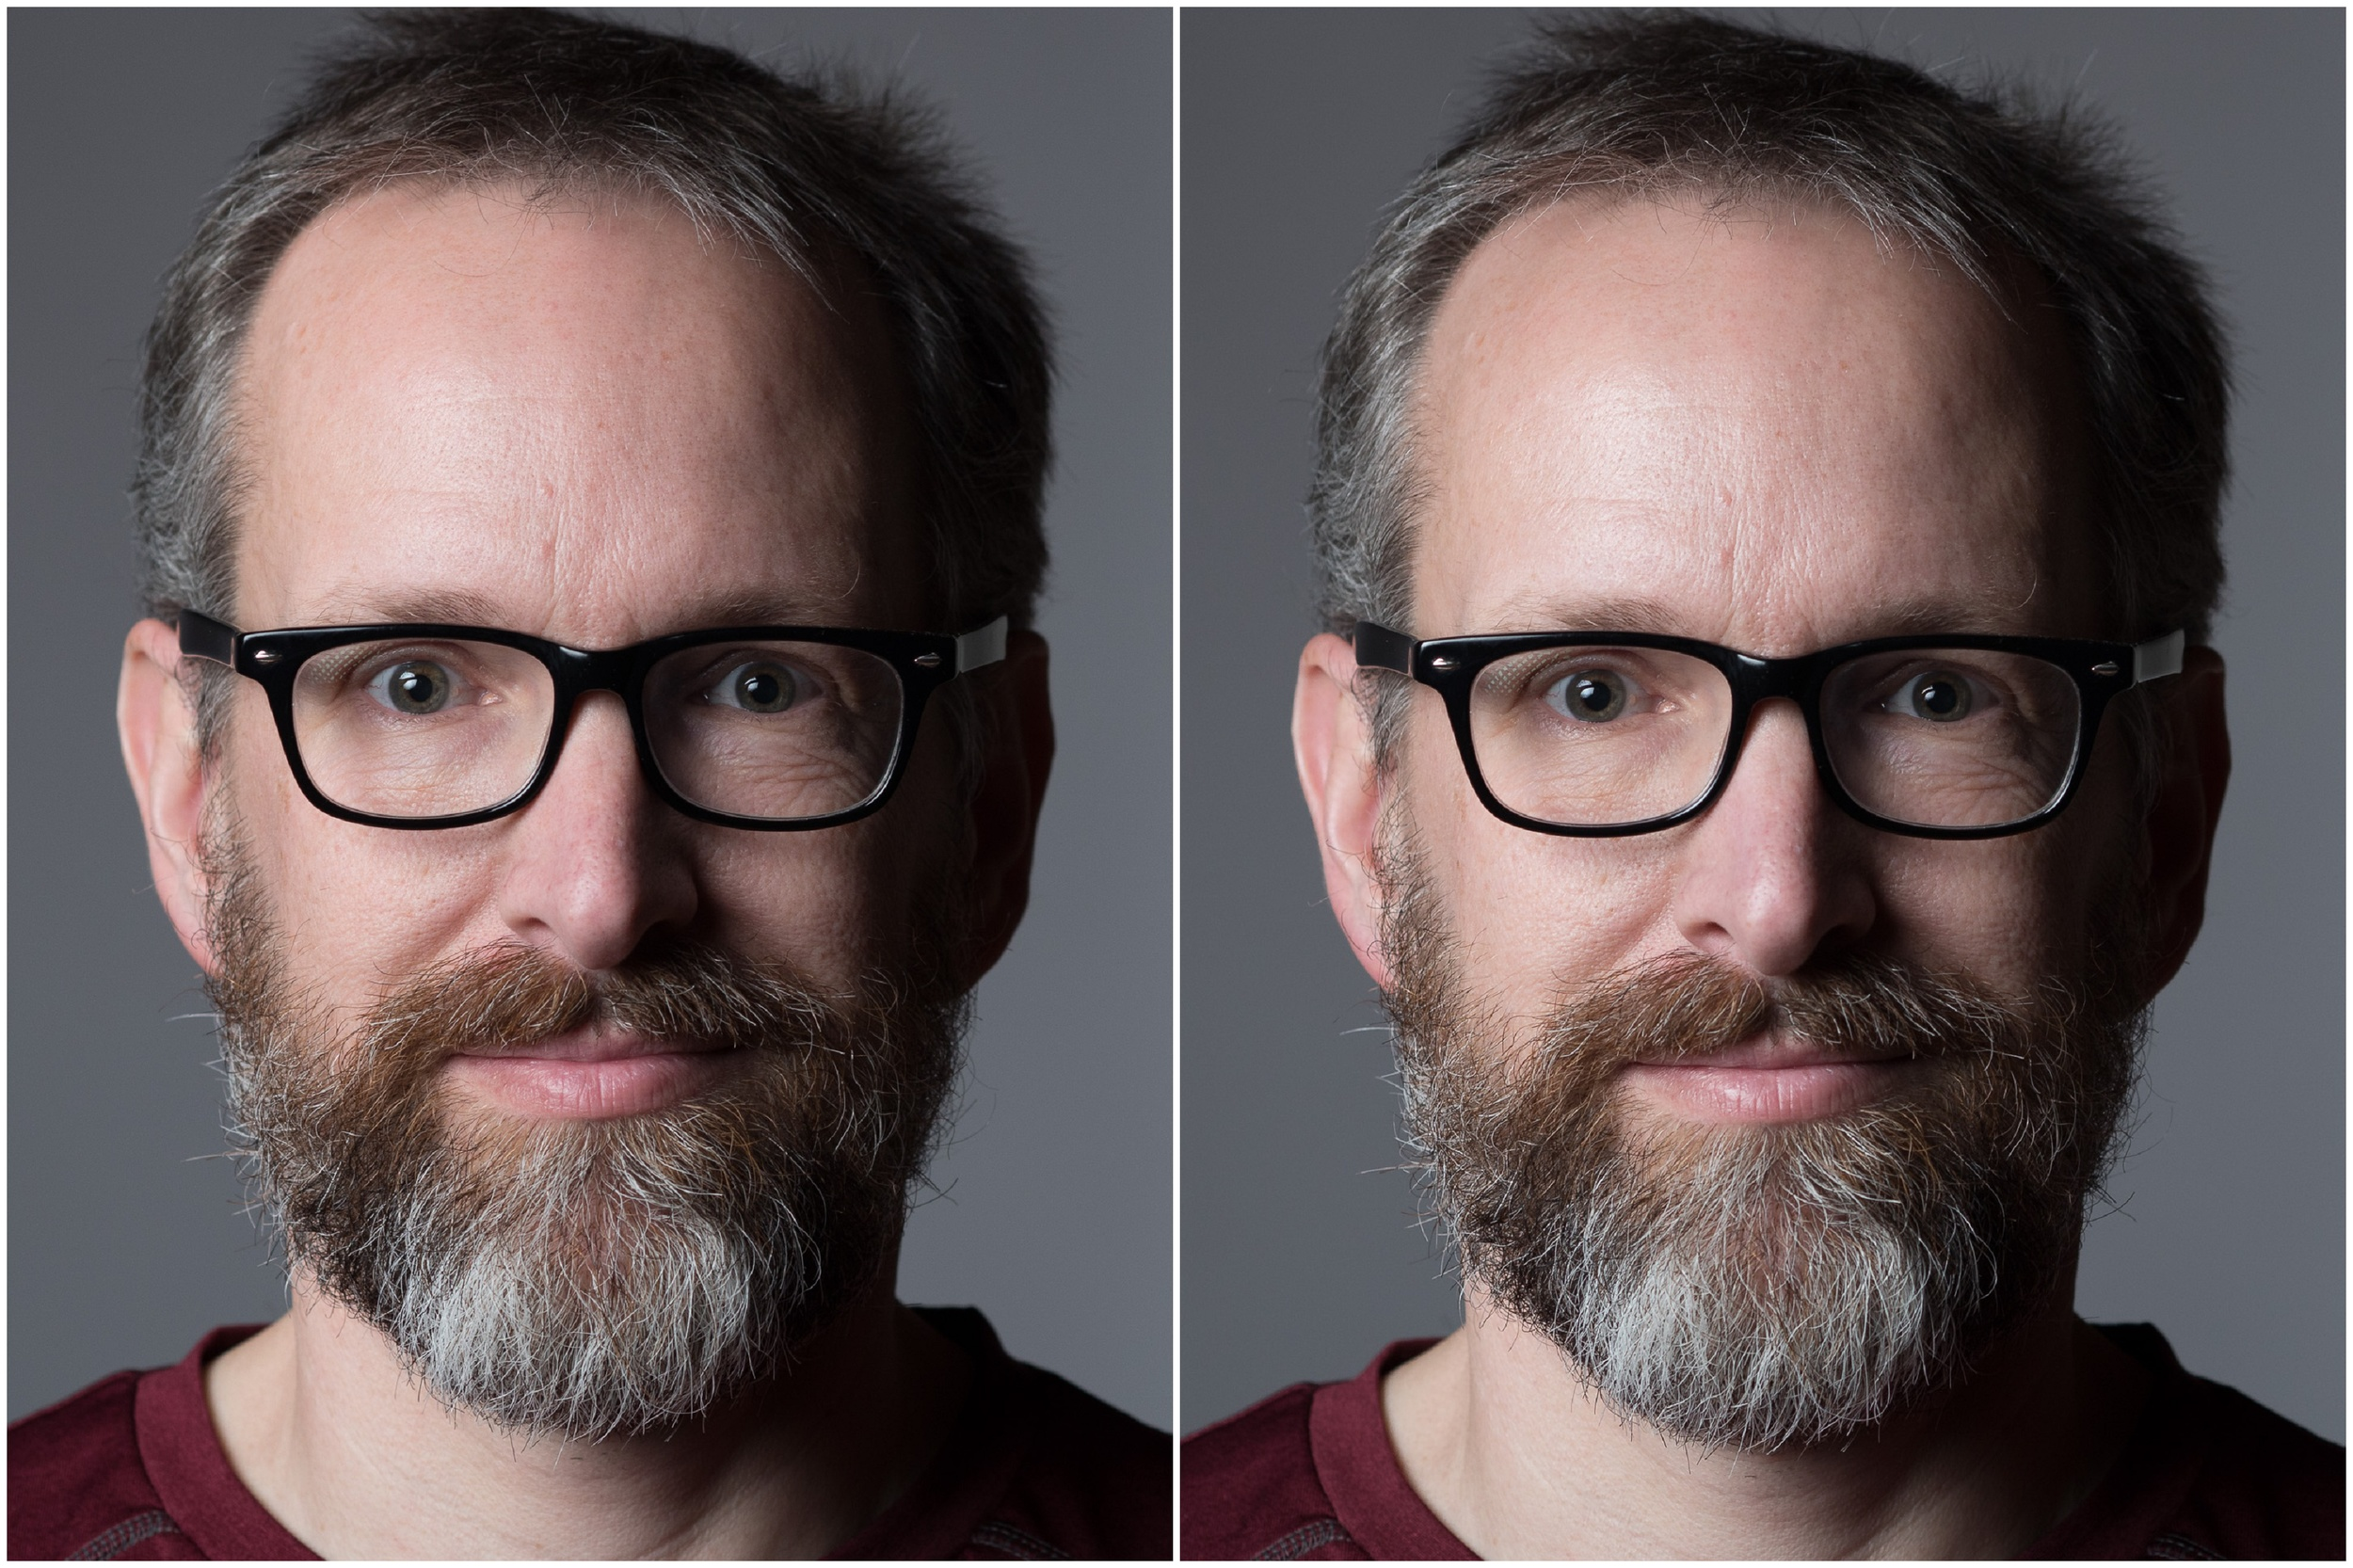 Using a polarizer (left) in studio to reduce the glare on the skin (right).